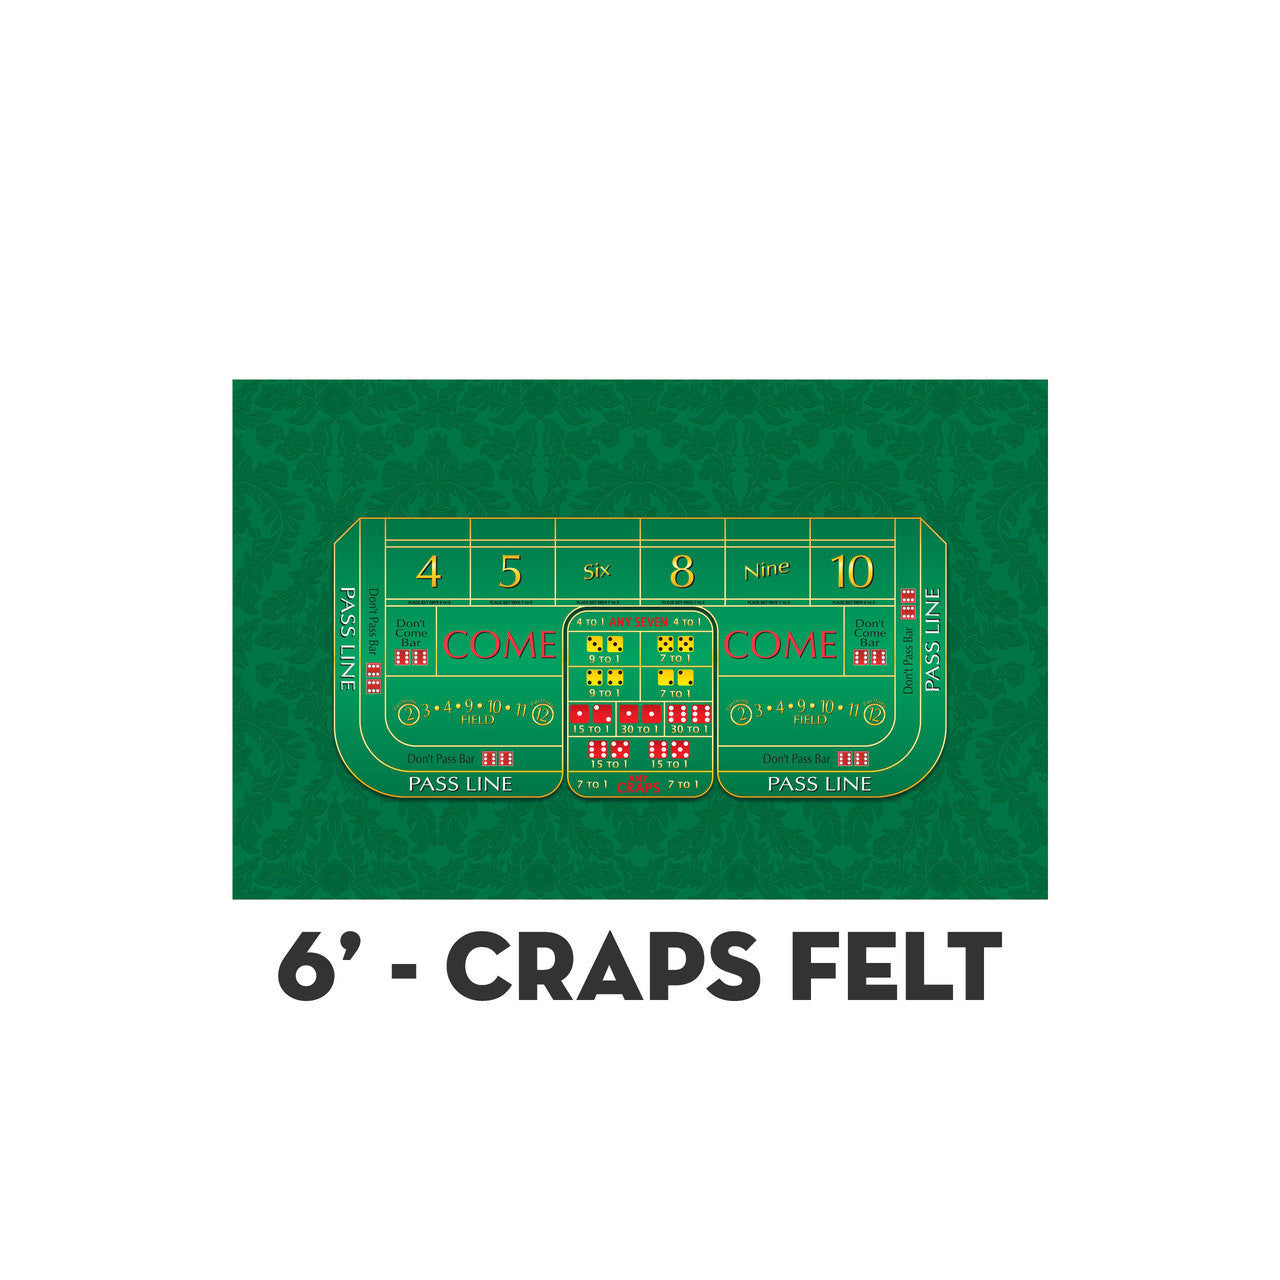 Craps table layout betting websites reddit college football betting